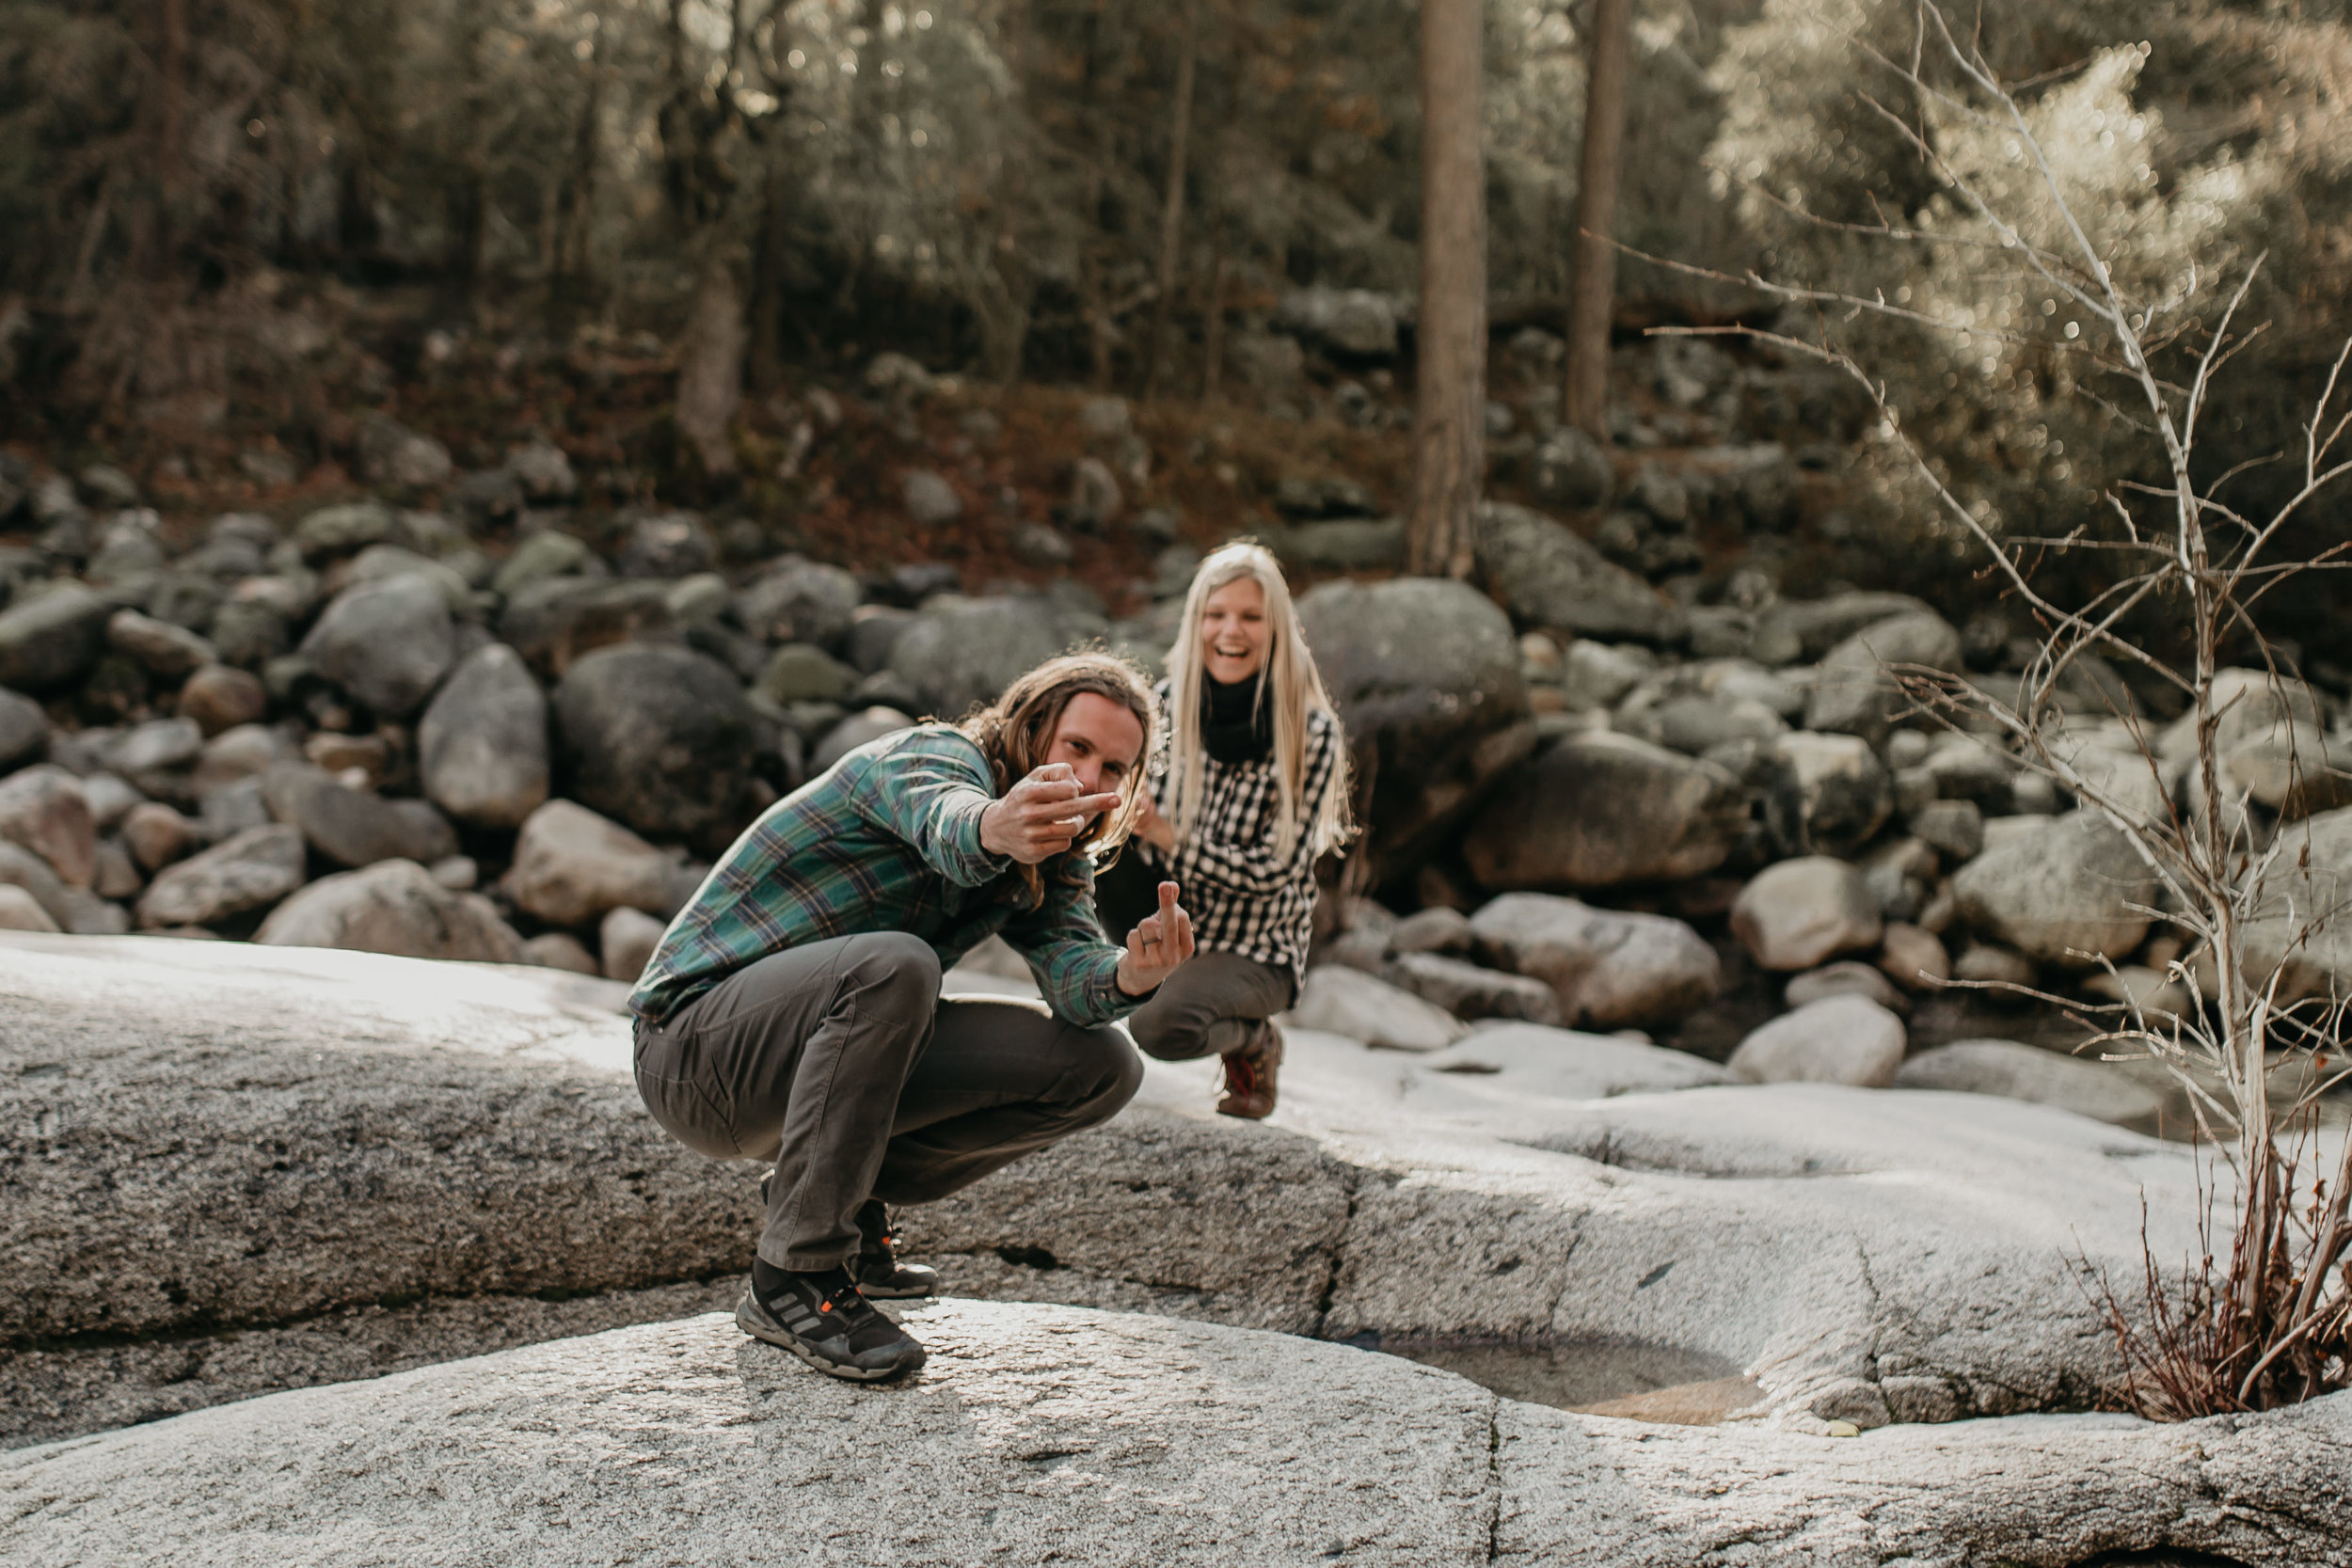 nicole-daacke-photography-yosemite-riverside-adventurous-engagement-photos-in-yosemite-national-park-elopement-photographer-weddings-travel-destination-wedding-eloping-elope-pine-forest-22.jpg